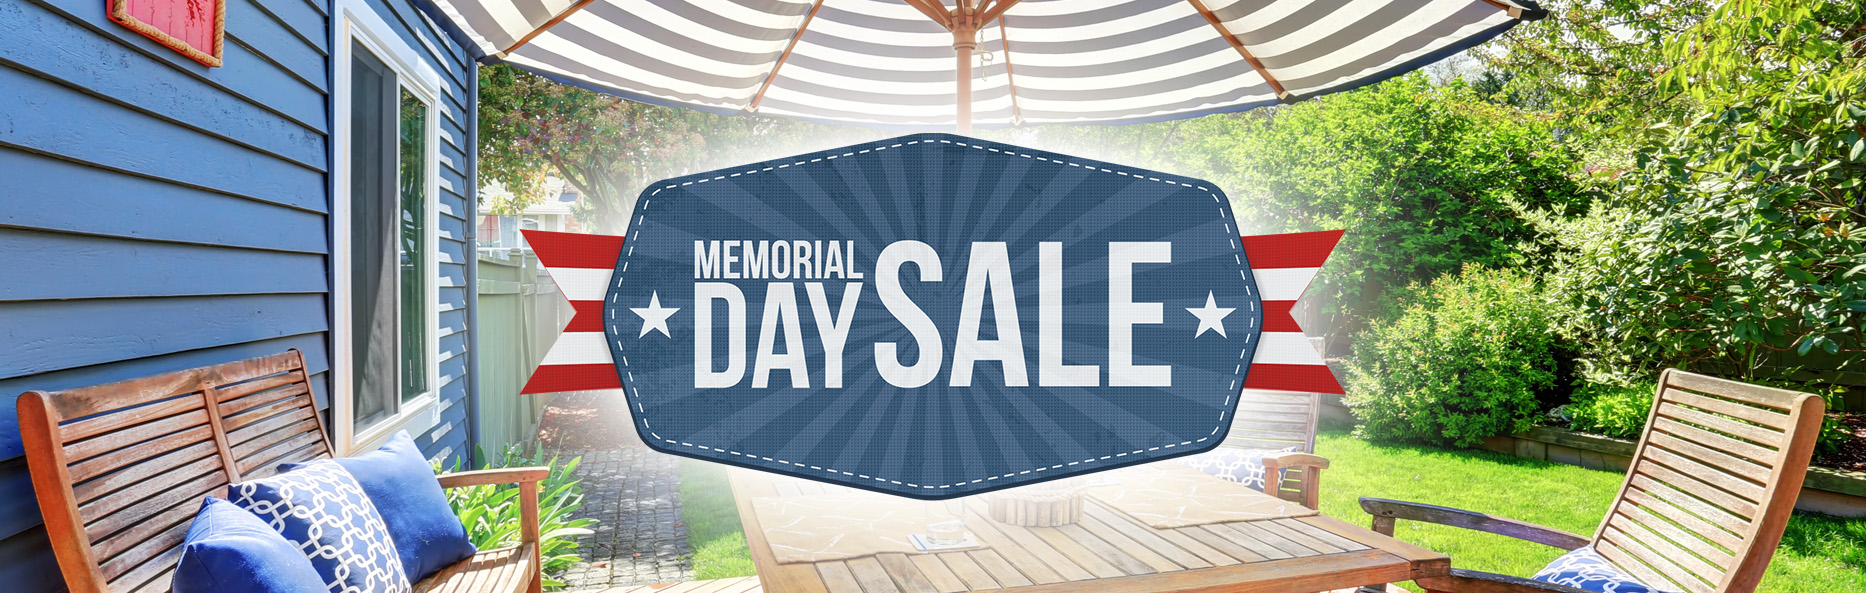 memorial salinas day expo home sale furniture